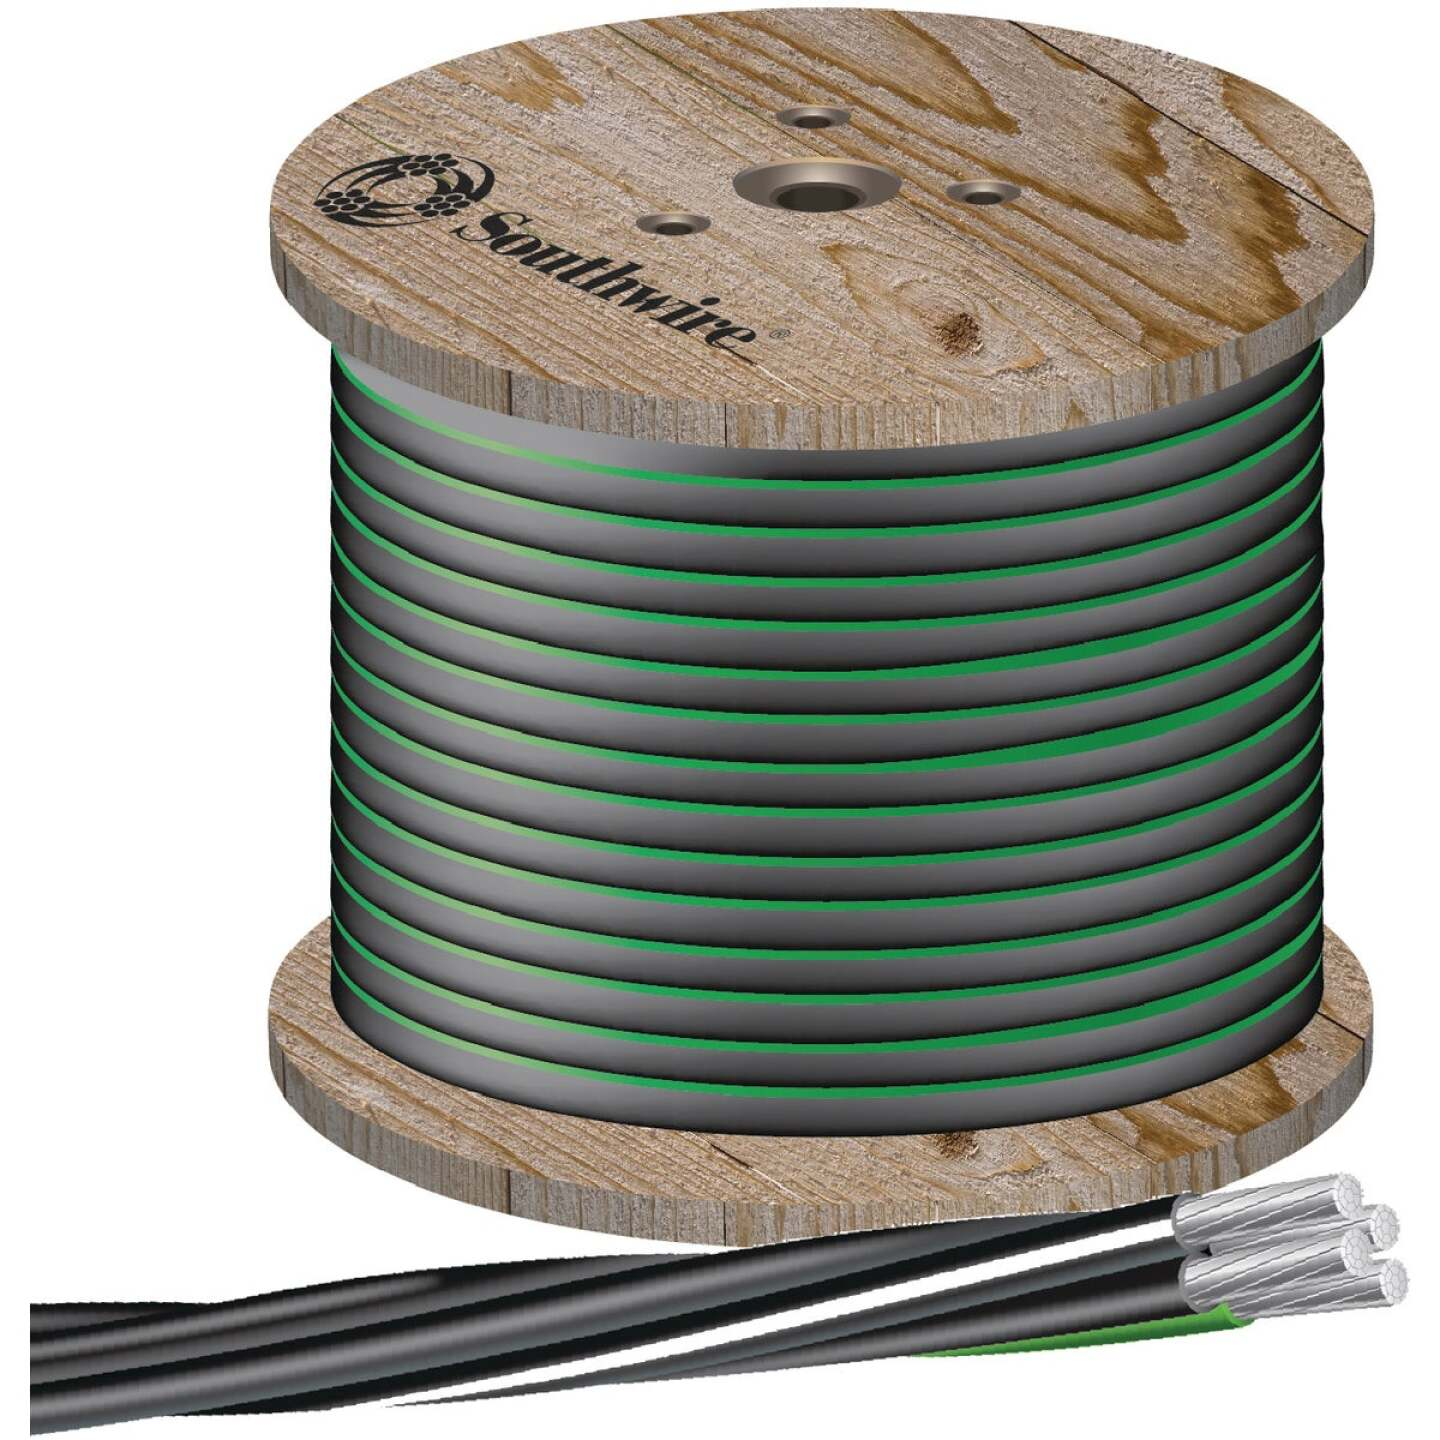 Southwire 500 Ft. 4/0-4/0-2/0-4 4-Conductor Underground Service Entrance Cable Image 1